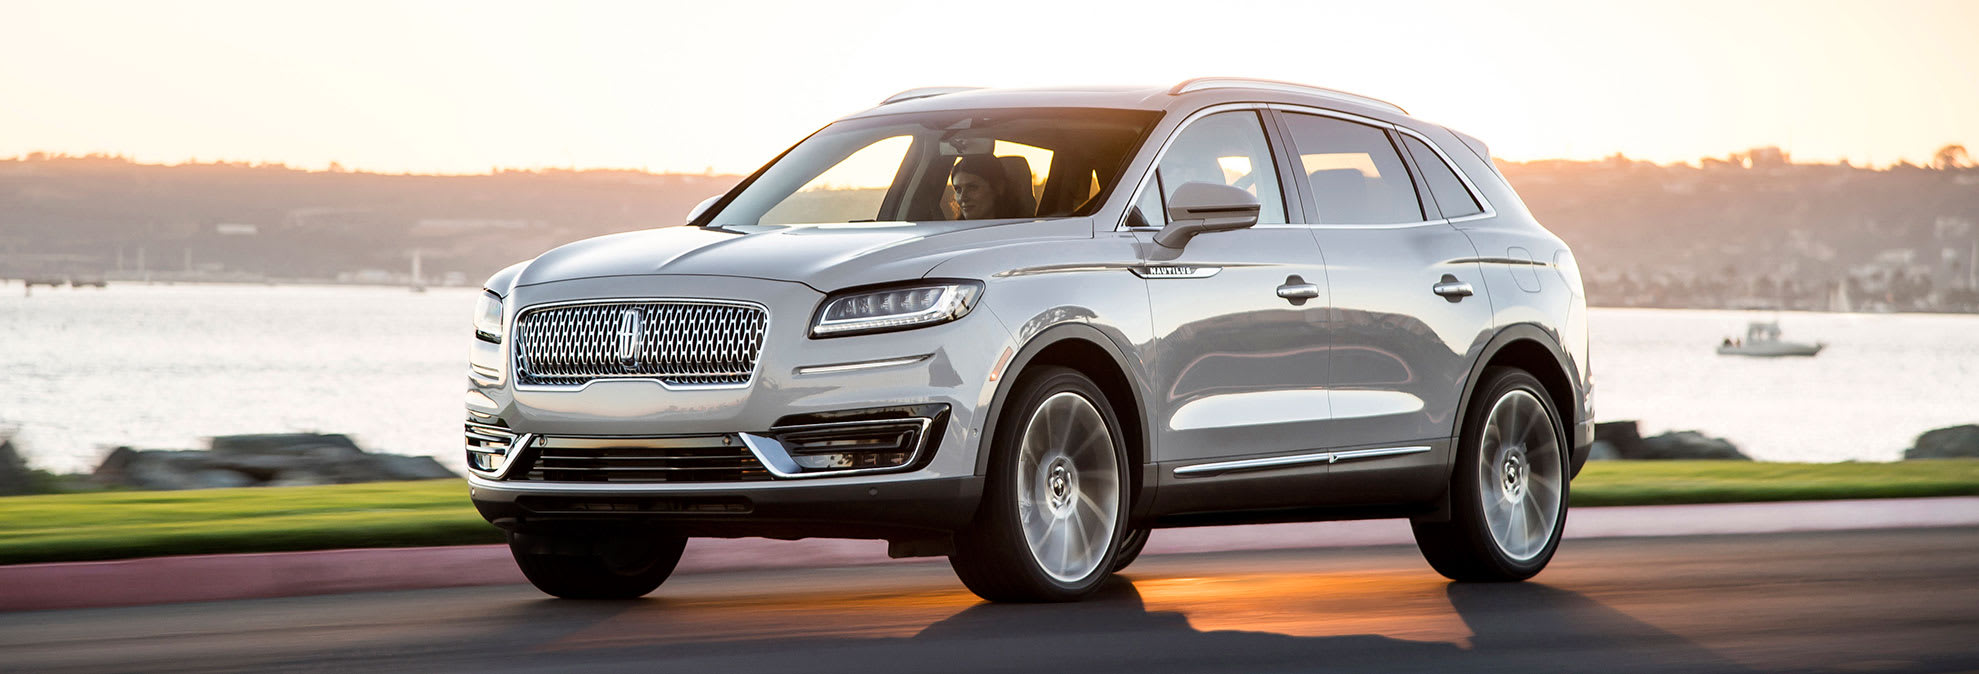 2019 Lincoln Nautilus Preview Consumer Reports